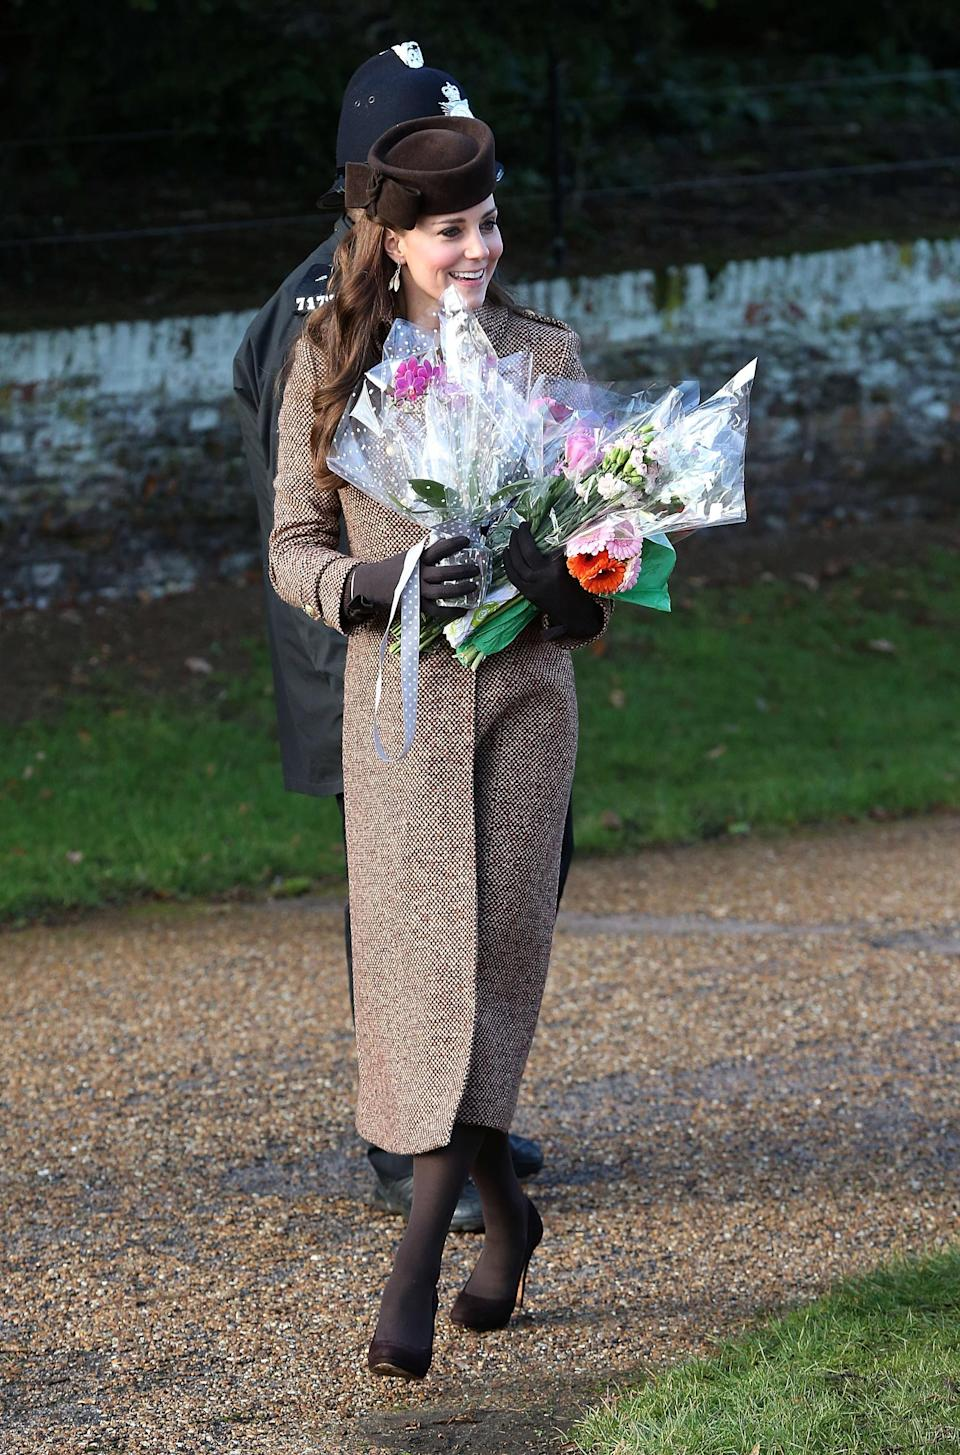 The Duchess of Cambridge was laden-down with flowers when she showed up at church in 2014. Photo: Getty Images